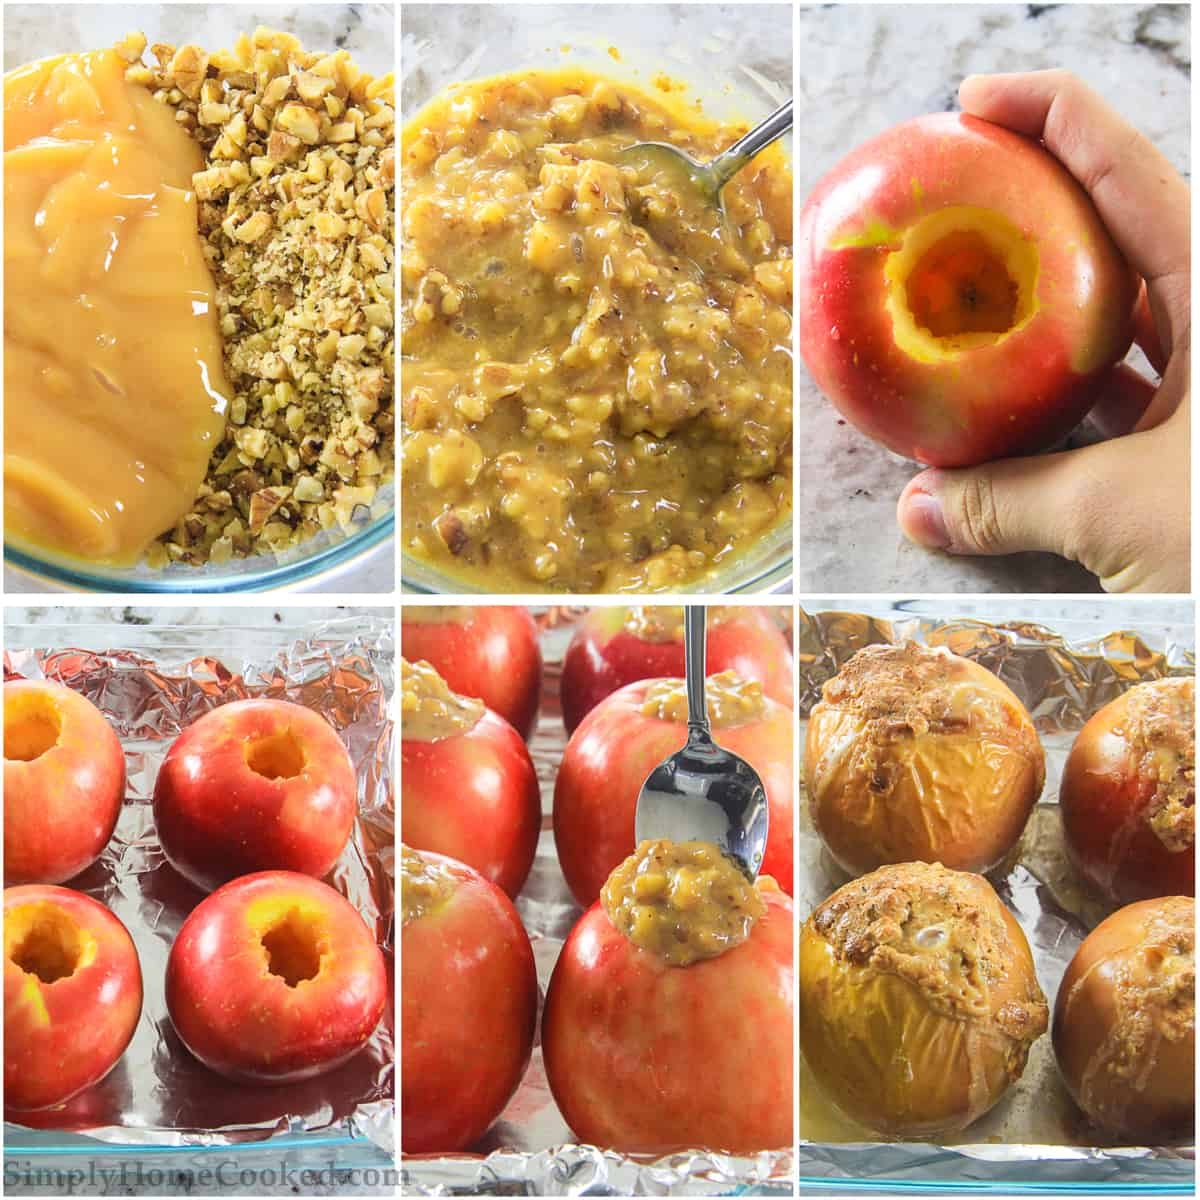 Steps on how to make baked apples. Mixing the walnut mixture, coring the apples, baking the apples in the oven.